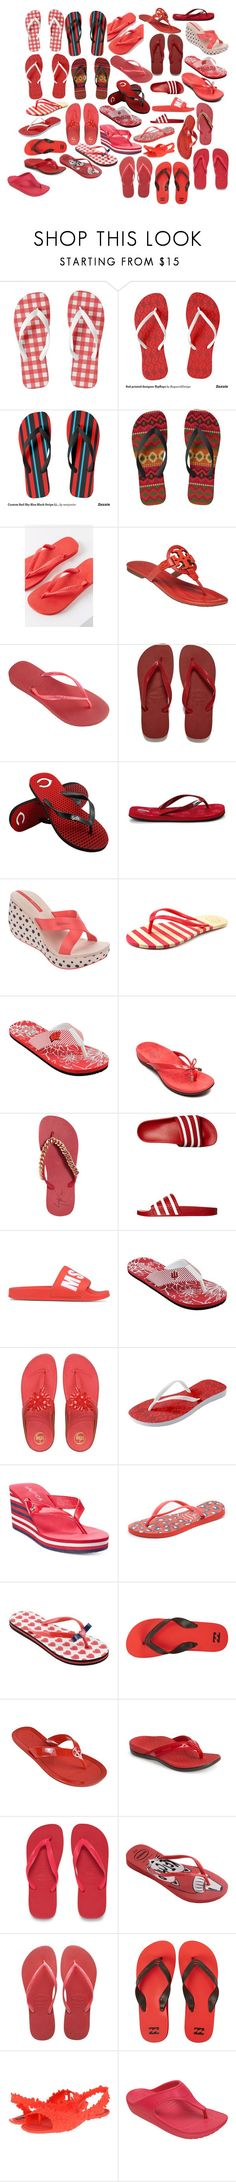 Red Flip Flops by rumagurl on Polyvore featuring Havaianas, Billabong, FitFlop, Inca, Nautica, IPANEMA, Forever Collectibles, Crocs, Tory Burch and Giuseppe Zanotti